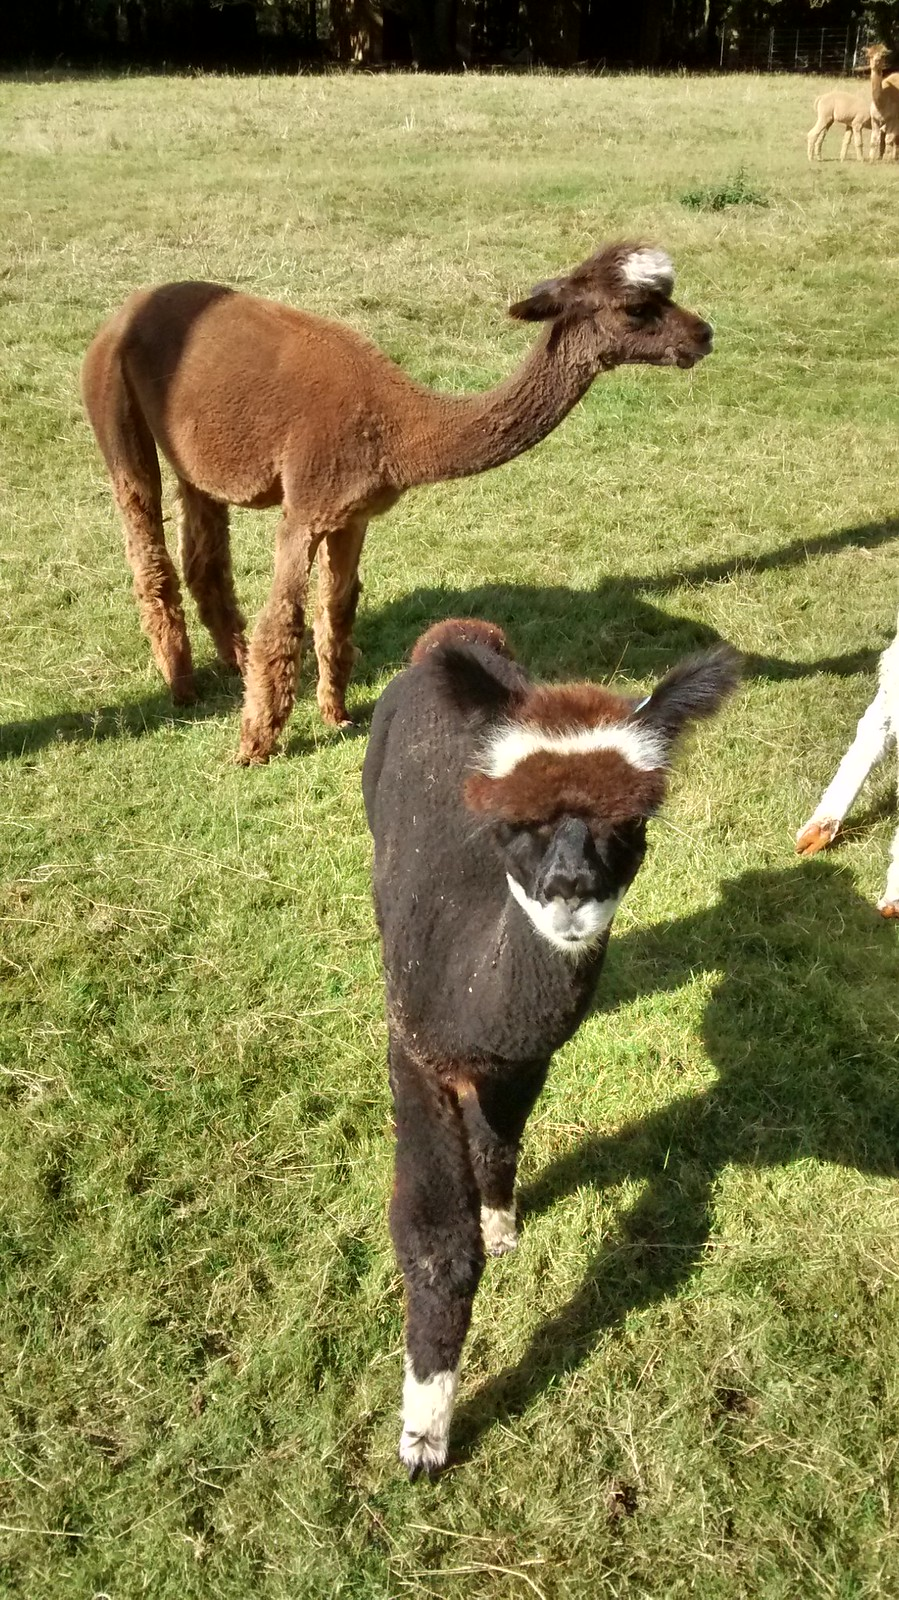 Chesham to Gt. Missenden Alpacas near Lee Green (apparently not wearing hats)